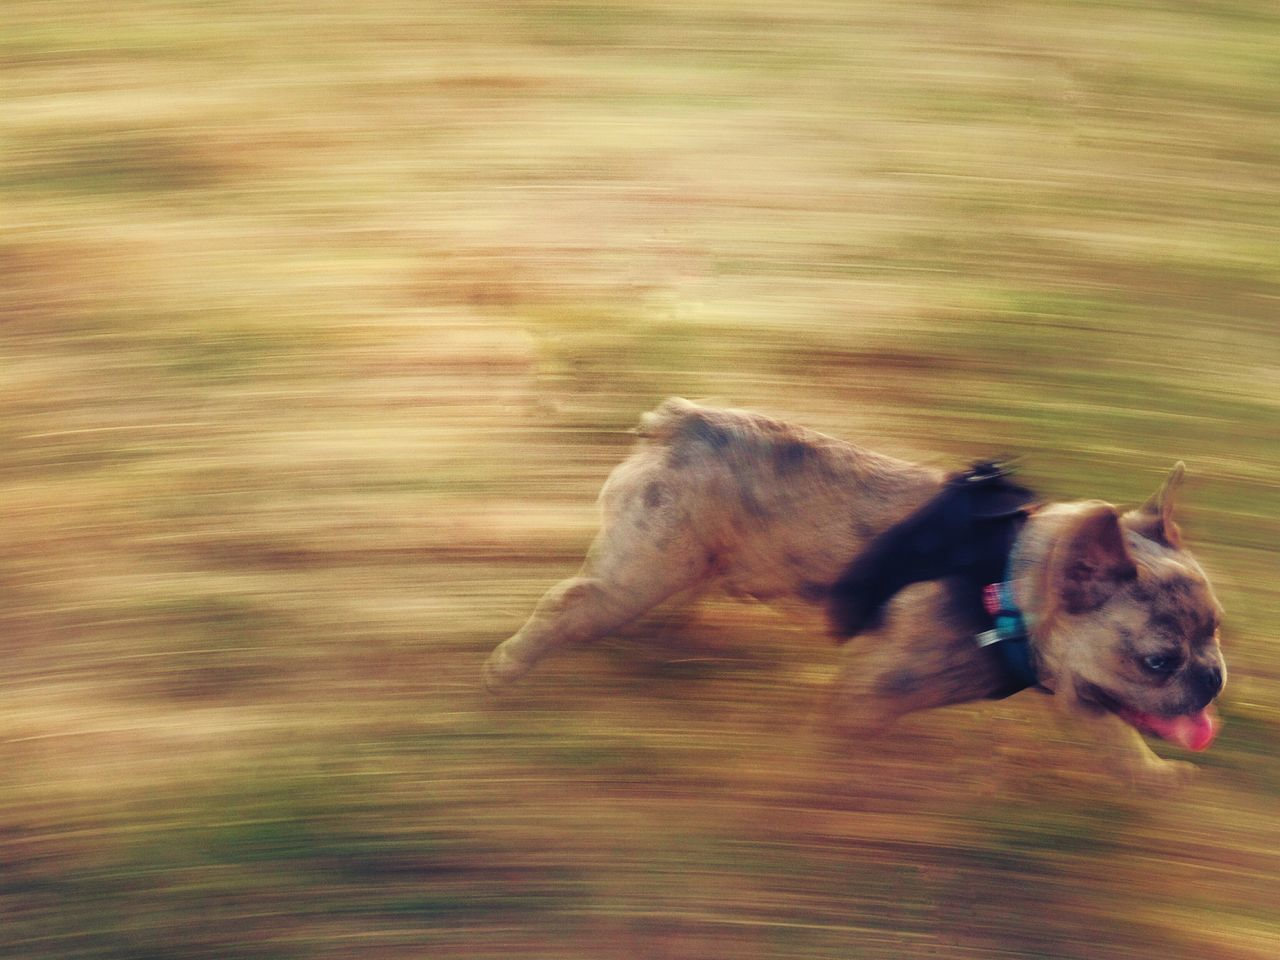 Speedy Lil Wayn Speedy Little Frenchie Young French Bulldog On The Run Movement Photography Dog Dogs Of EyeEm Pet Running Dog Puppy Puppy Dog Face Blue Eyes